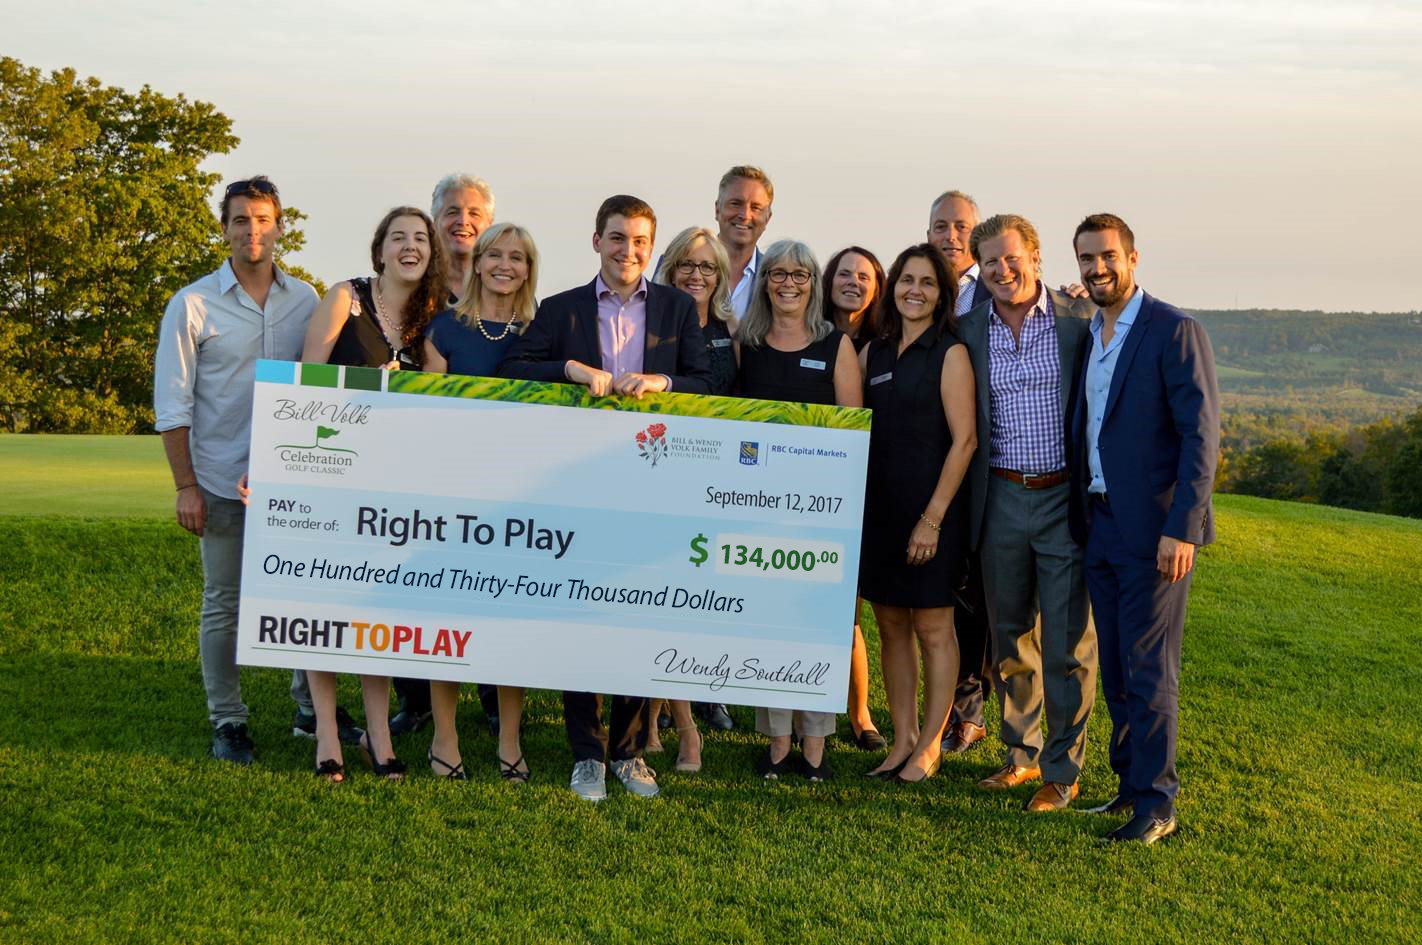 Bill Volk Golf Classic Presenting Cheque to Right To Play